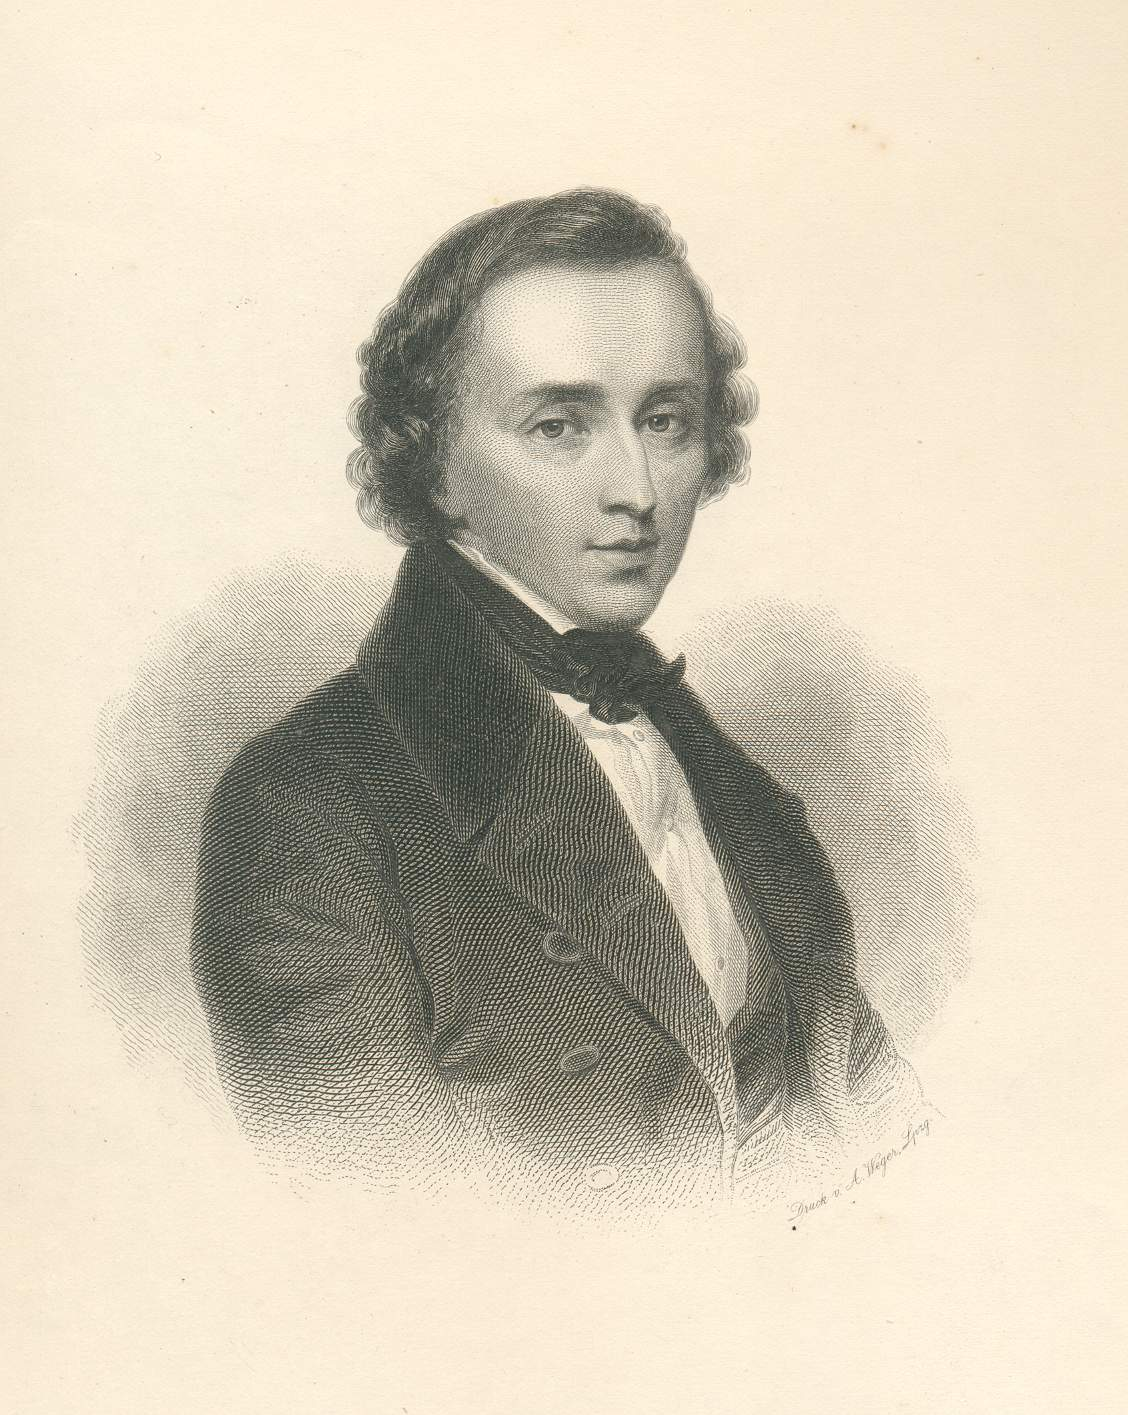 chopin music Fr d ric fran ois chopin (composer 1810-1849) - play streams in full or download mp3 from classical archives (classicalarchivescom), the largest and best organized classical music site on the web biography, musicologyand essential works.